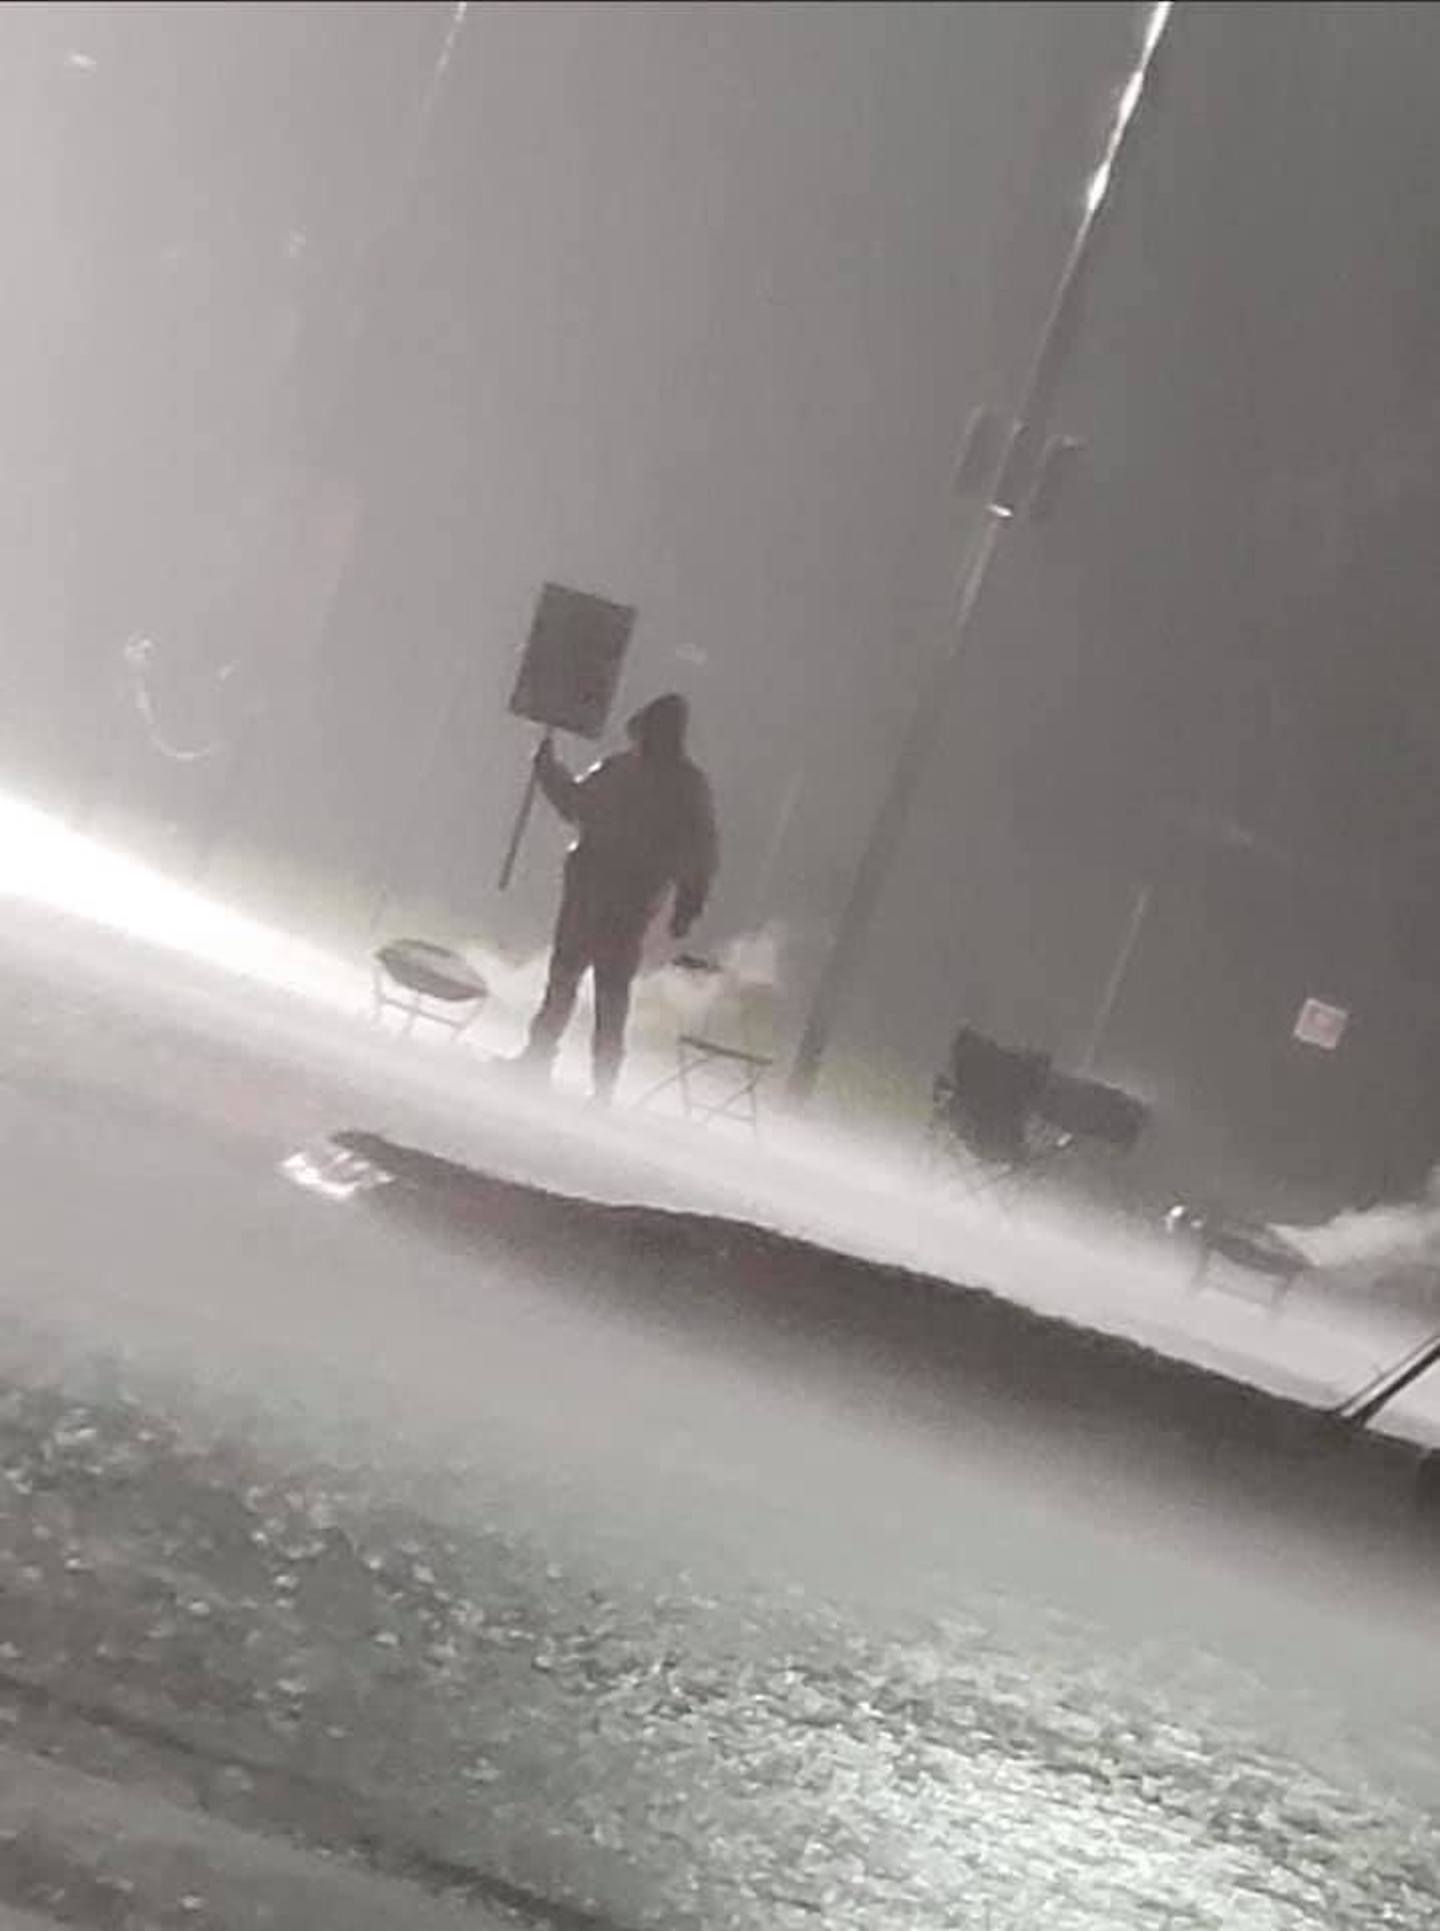 The Kellogg's Worker in This Viral Photo Told Us Why He's Braving the Storm